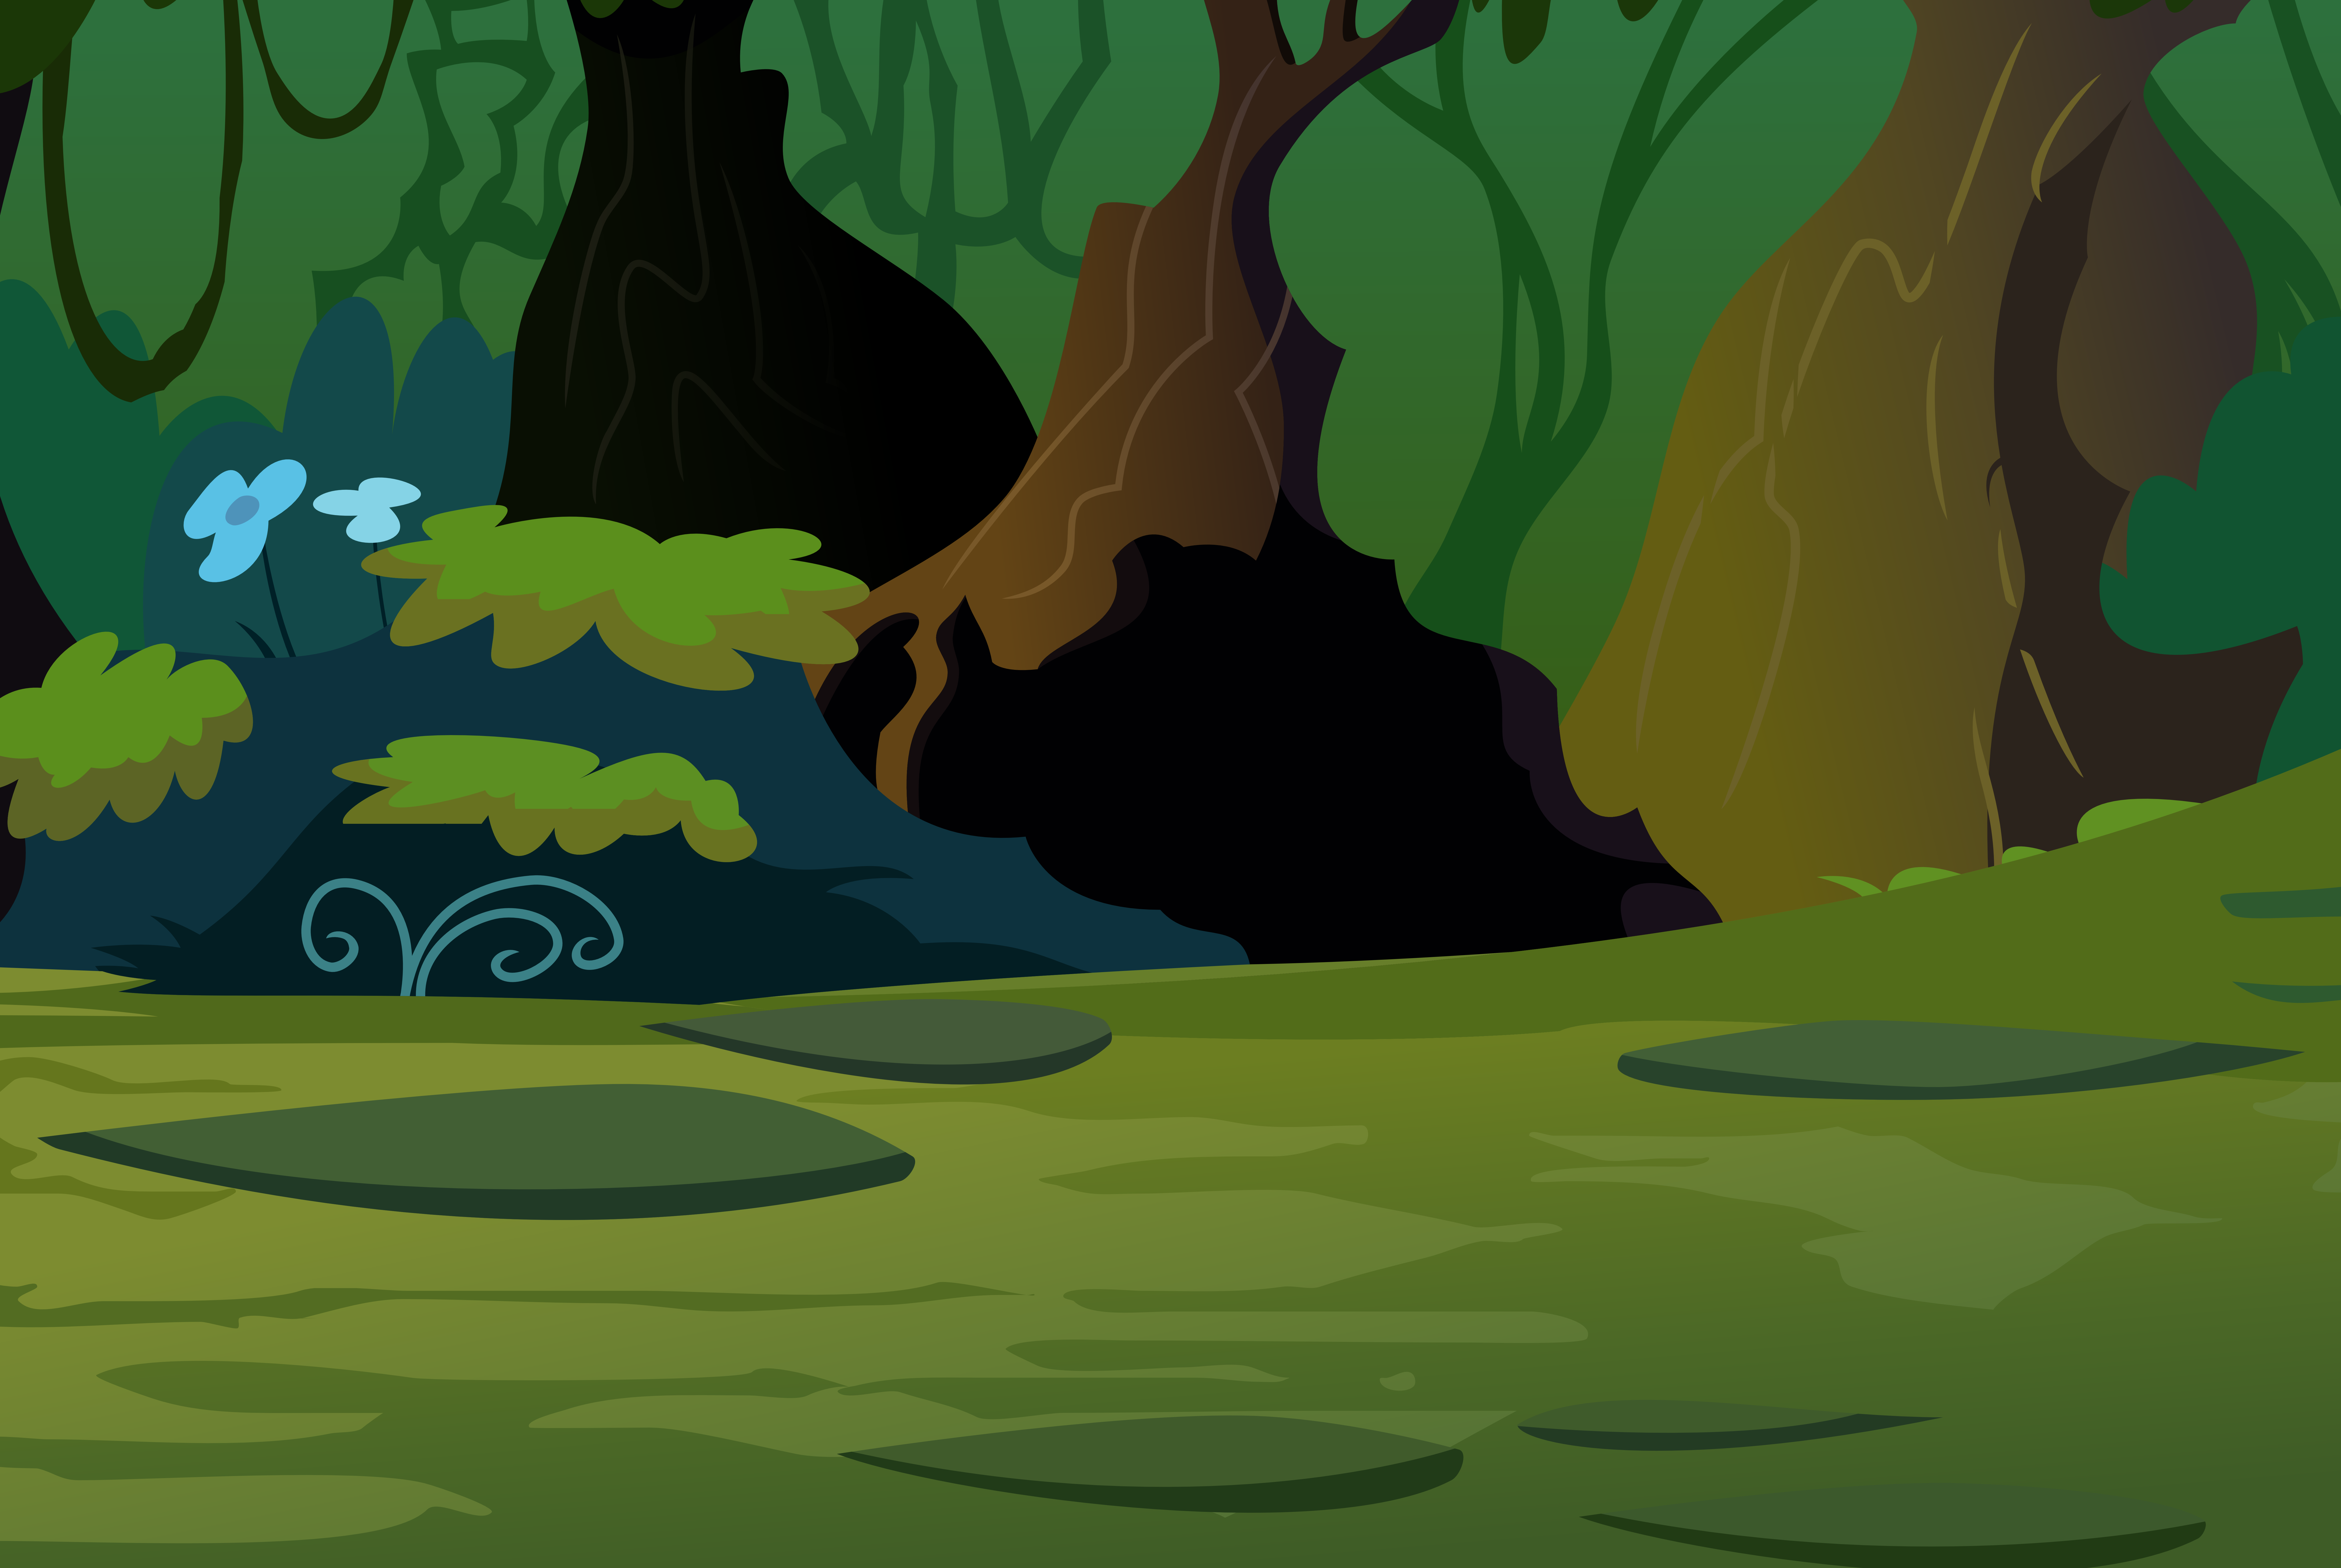 Free vector jungle background free vector download 41375